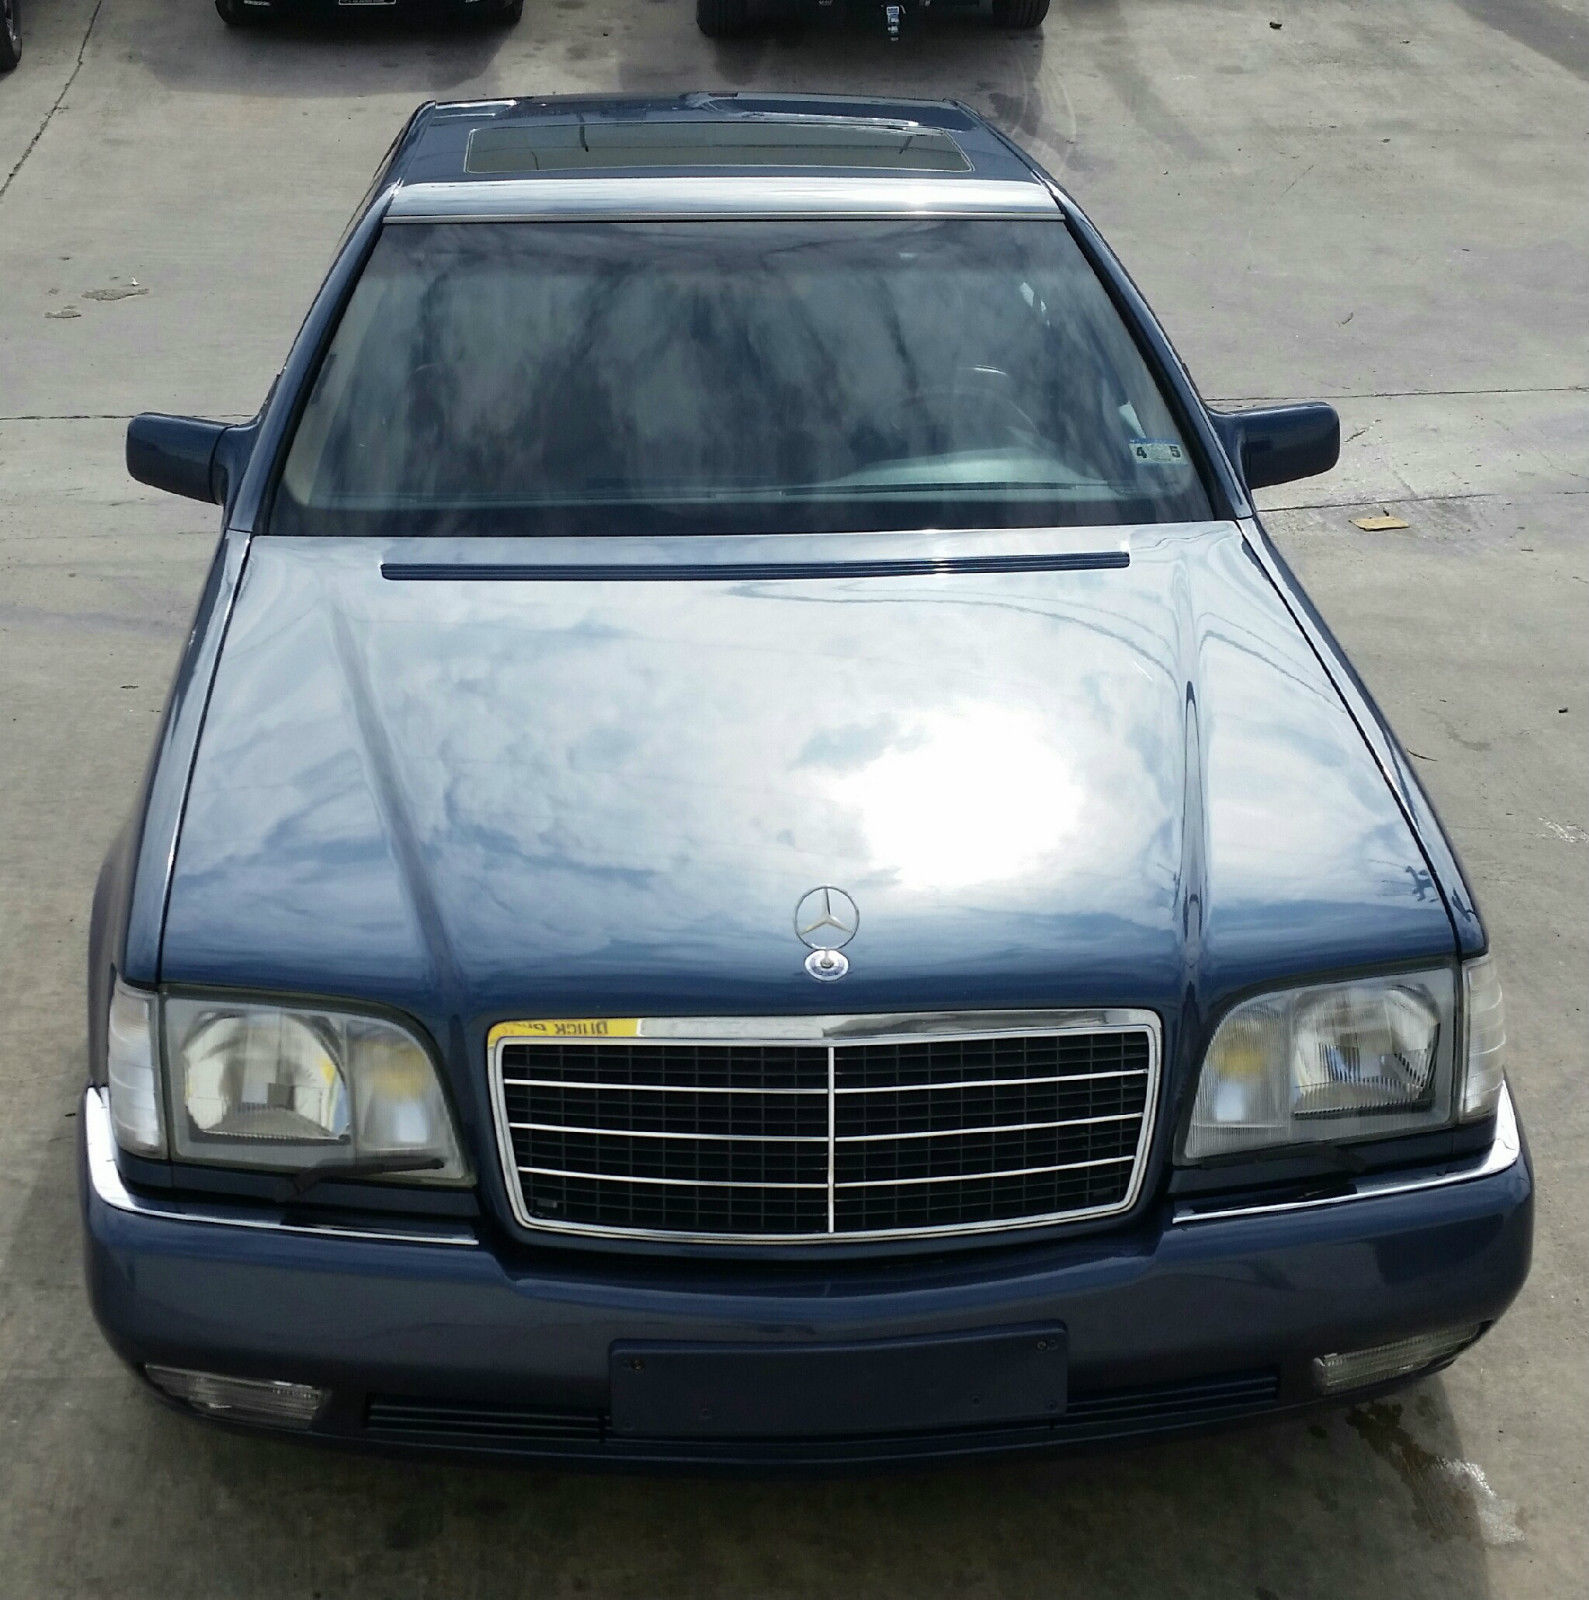 1993 mercedes benz 600sel sedan 4 door 6 0l lorinser for Mercedes benz 4 door